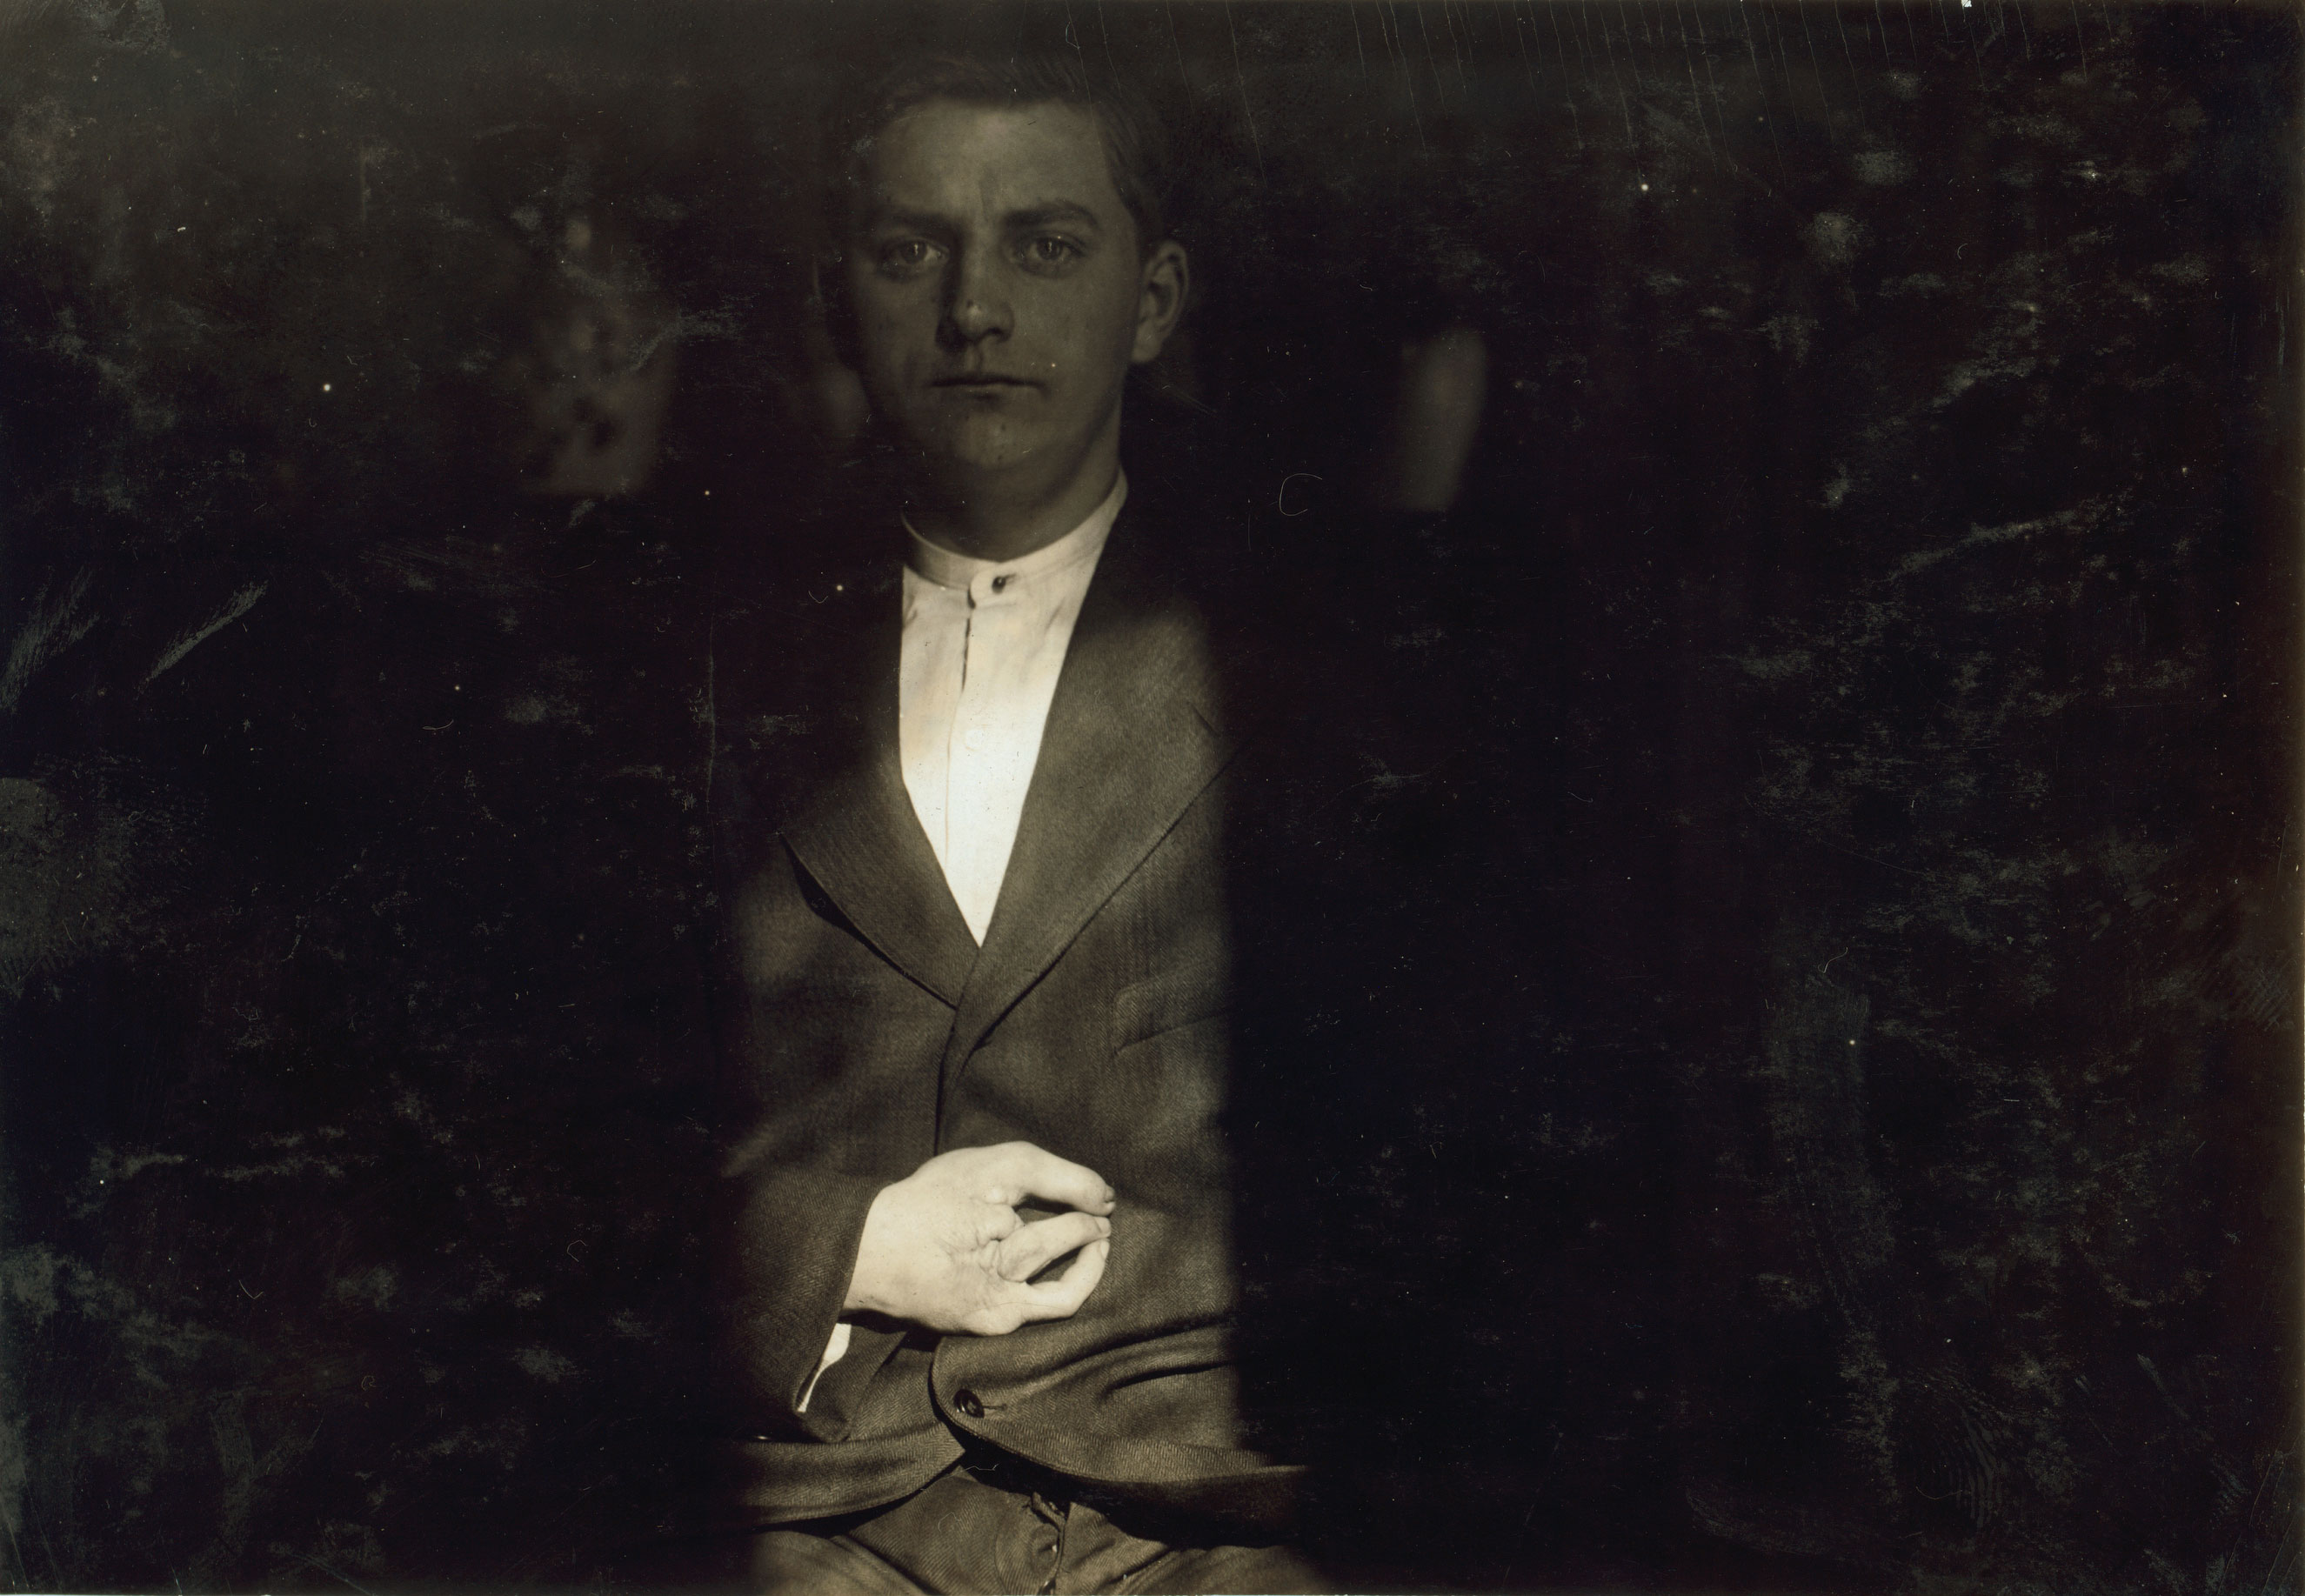 Case of Frank Wiegel, Brooklyn N.Y., injured after working 18 hours a day. He was injured at 1:55 A.M. January 18, 1914. Age 15 years. Employed by the Henry Bosch Paper Co., makers of wallpaper sample books. On Saturday, or rather Sunday morning at 1:55, Frank must have fallen asleep and in some way he knocked against the controlling pedal, and the next thing he knew his hand was caught in the machine. He sued the Co. for damages and after 2 years' litigation he received an award of $10,000 - $5,000 for each of 2 fingers which were amputated. The lawyer's fee has not yet been decided upon by the court. Jan. 1916. Brooklyn, New York.